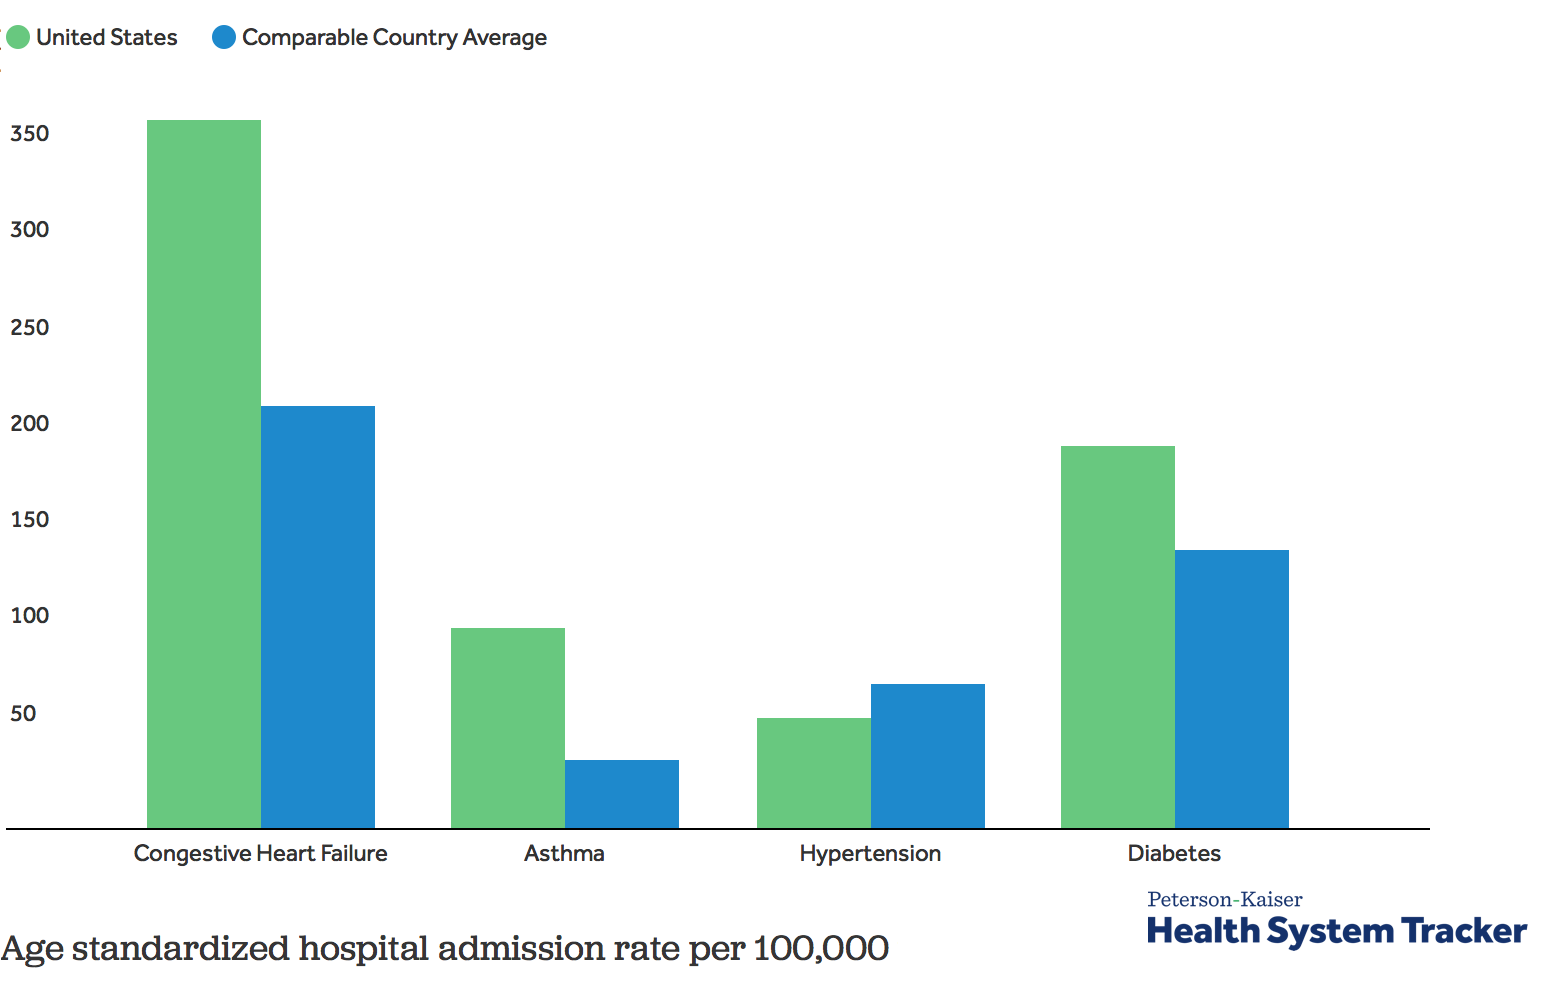 How does the quality of the U.S. healthcare system compare to other countries? - Peterson-Kaiser Health System Tracker